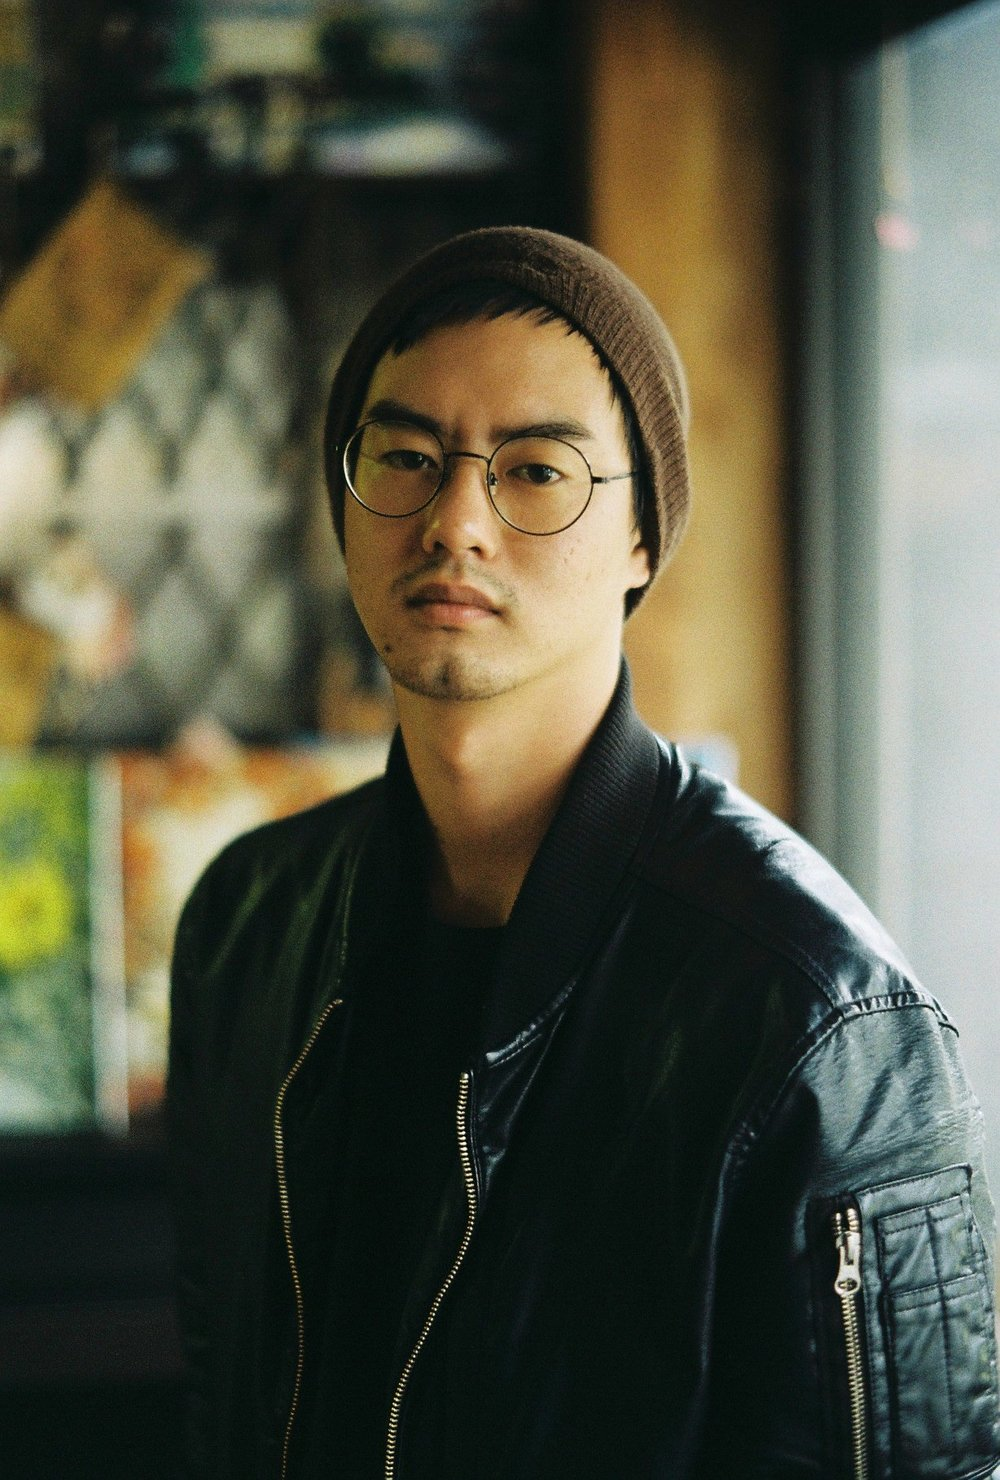 KIM Dong-Bin - Has produced and directed both TV documentaries and feature length documentaries along with music videos and commercial films. He has worked on marketing campaigns and is currently the managing partner and producer at Sonamu Film. Member of Directors Guild of Korea.